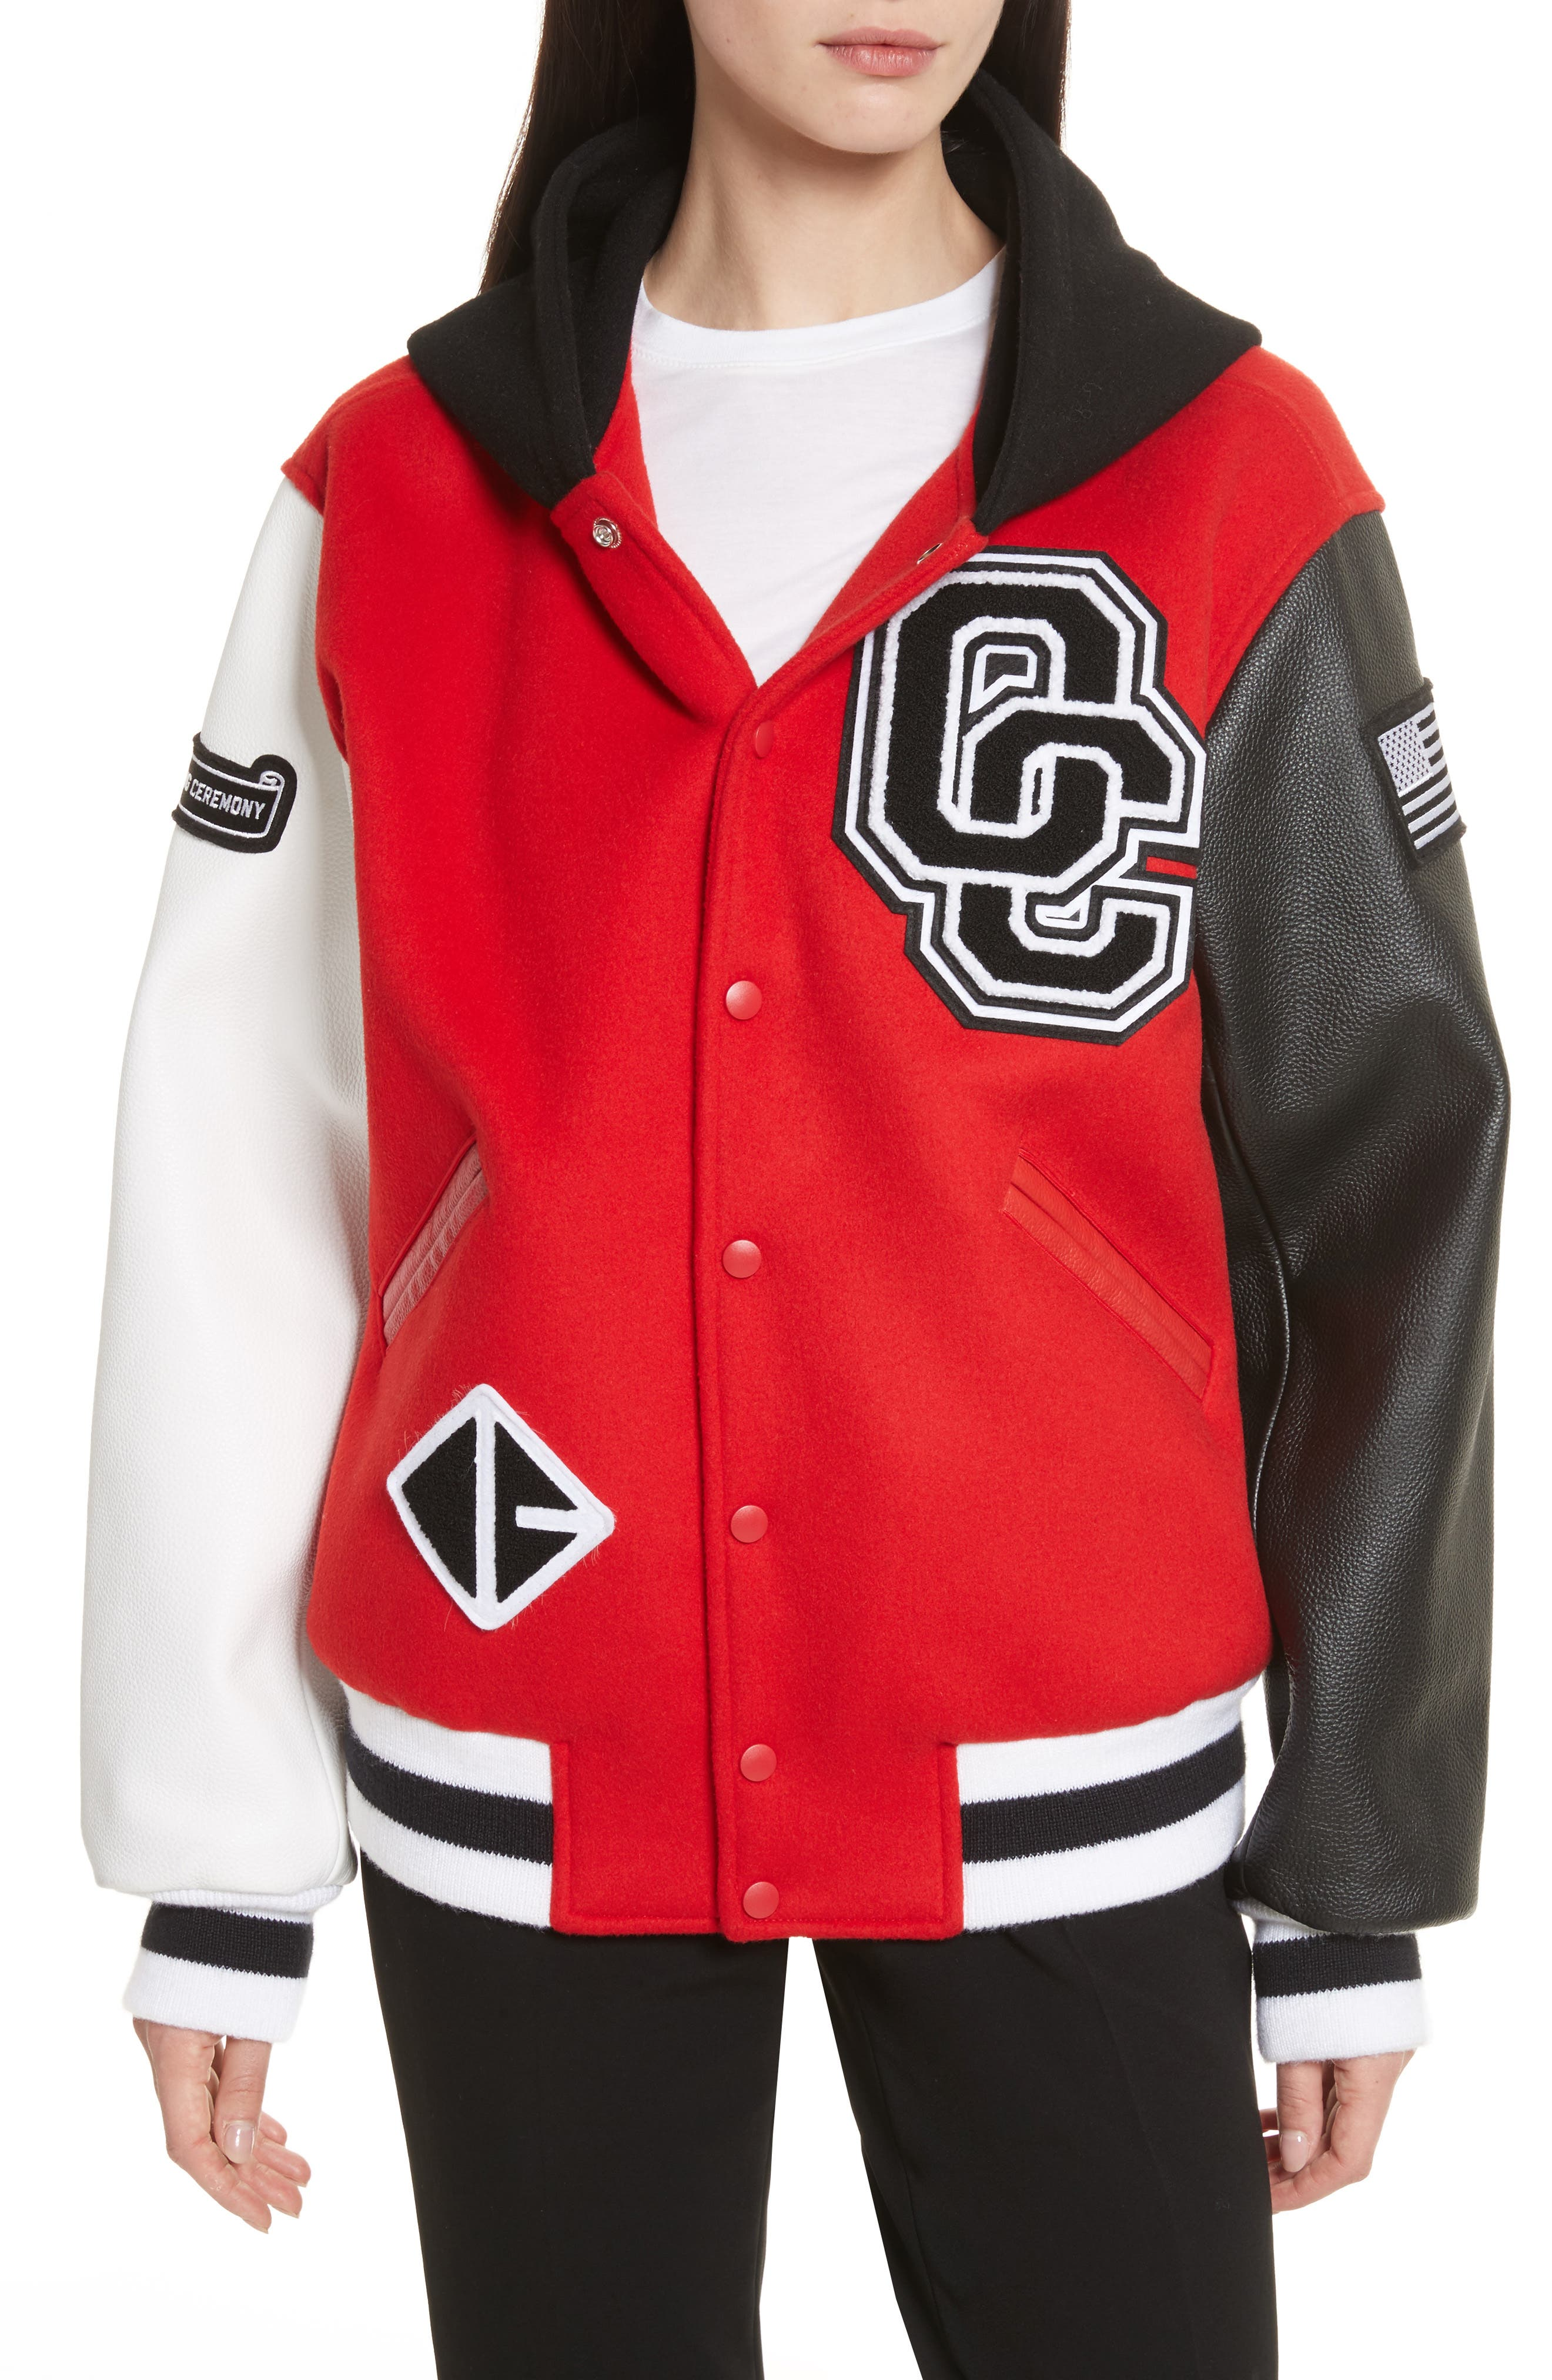 Alternate Image 1 Selected - Opening Ceremony Hooded Varsity Jacket (Limited Edition)